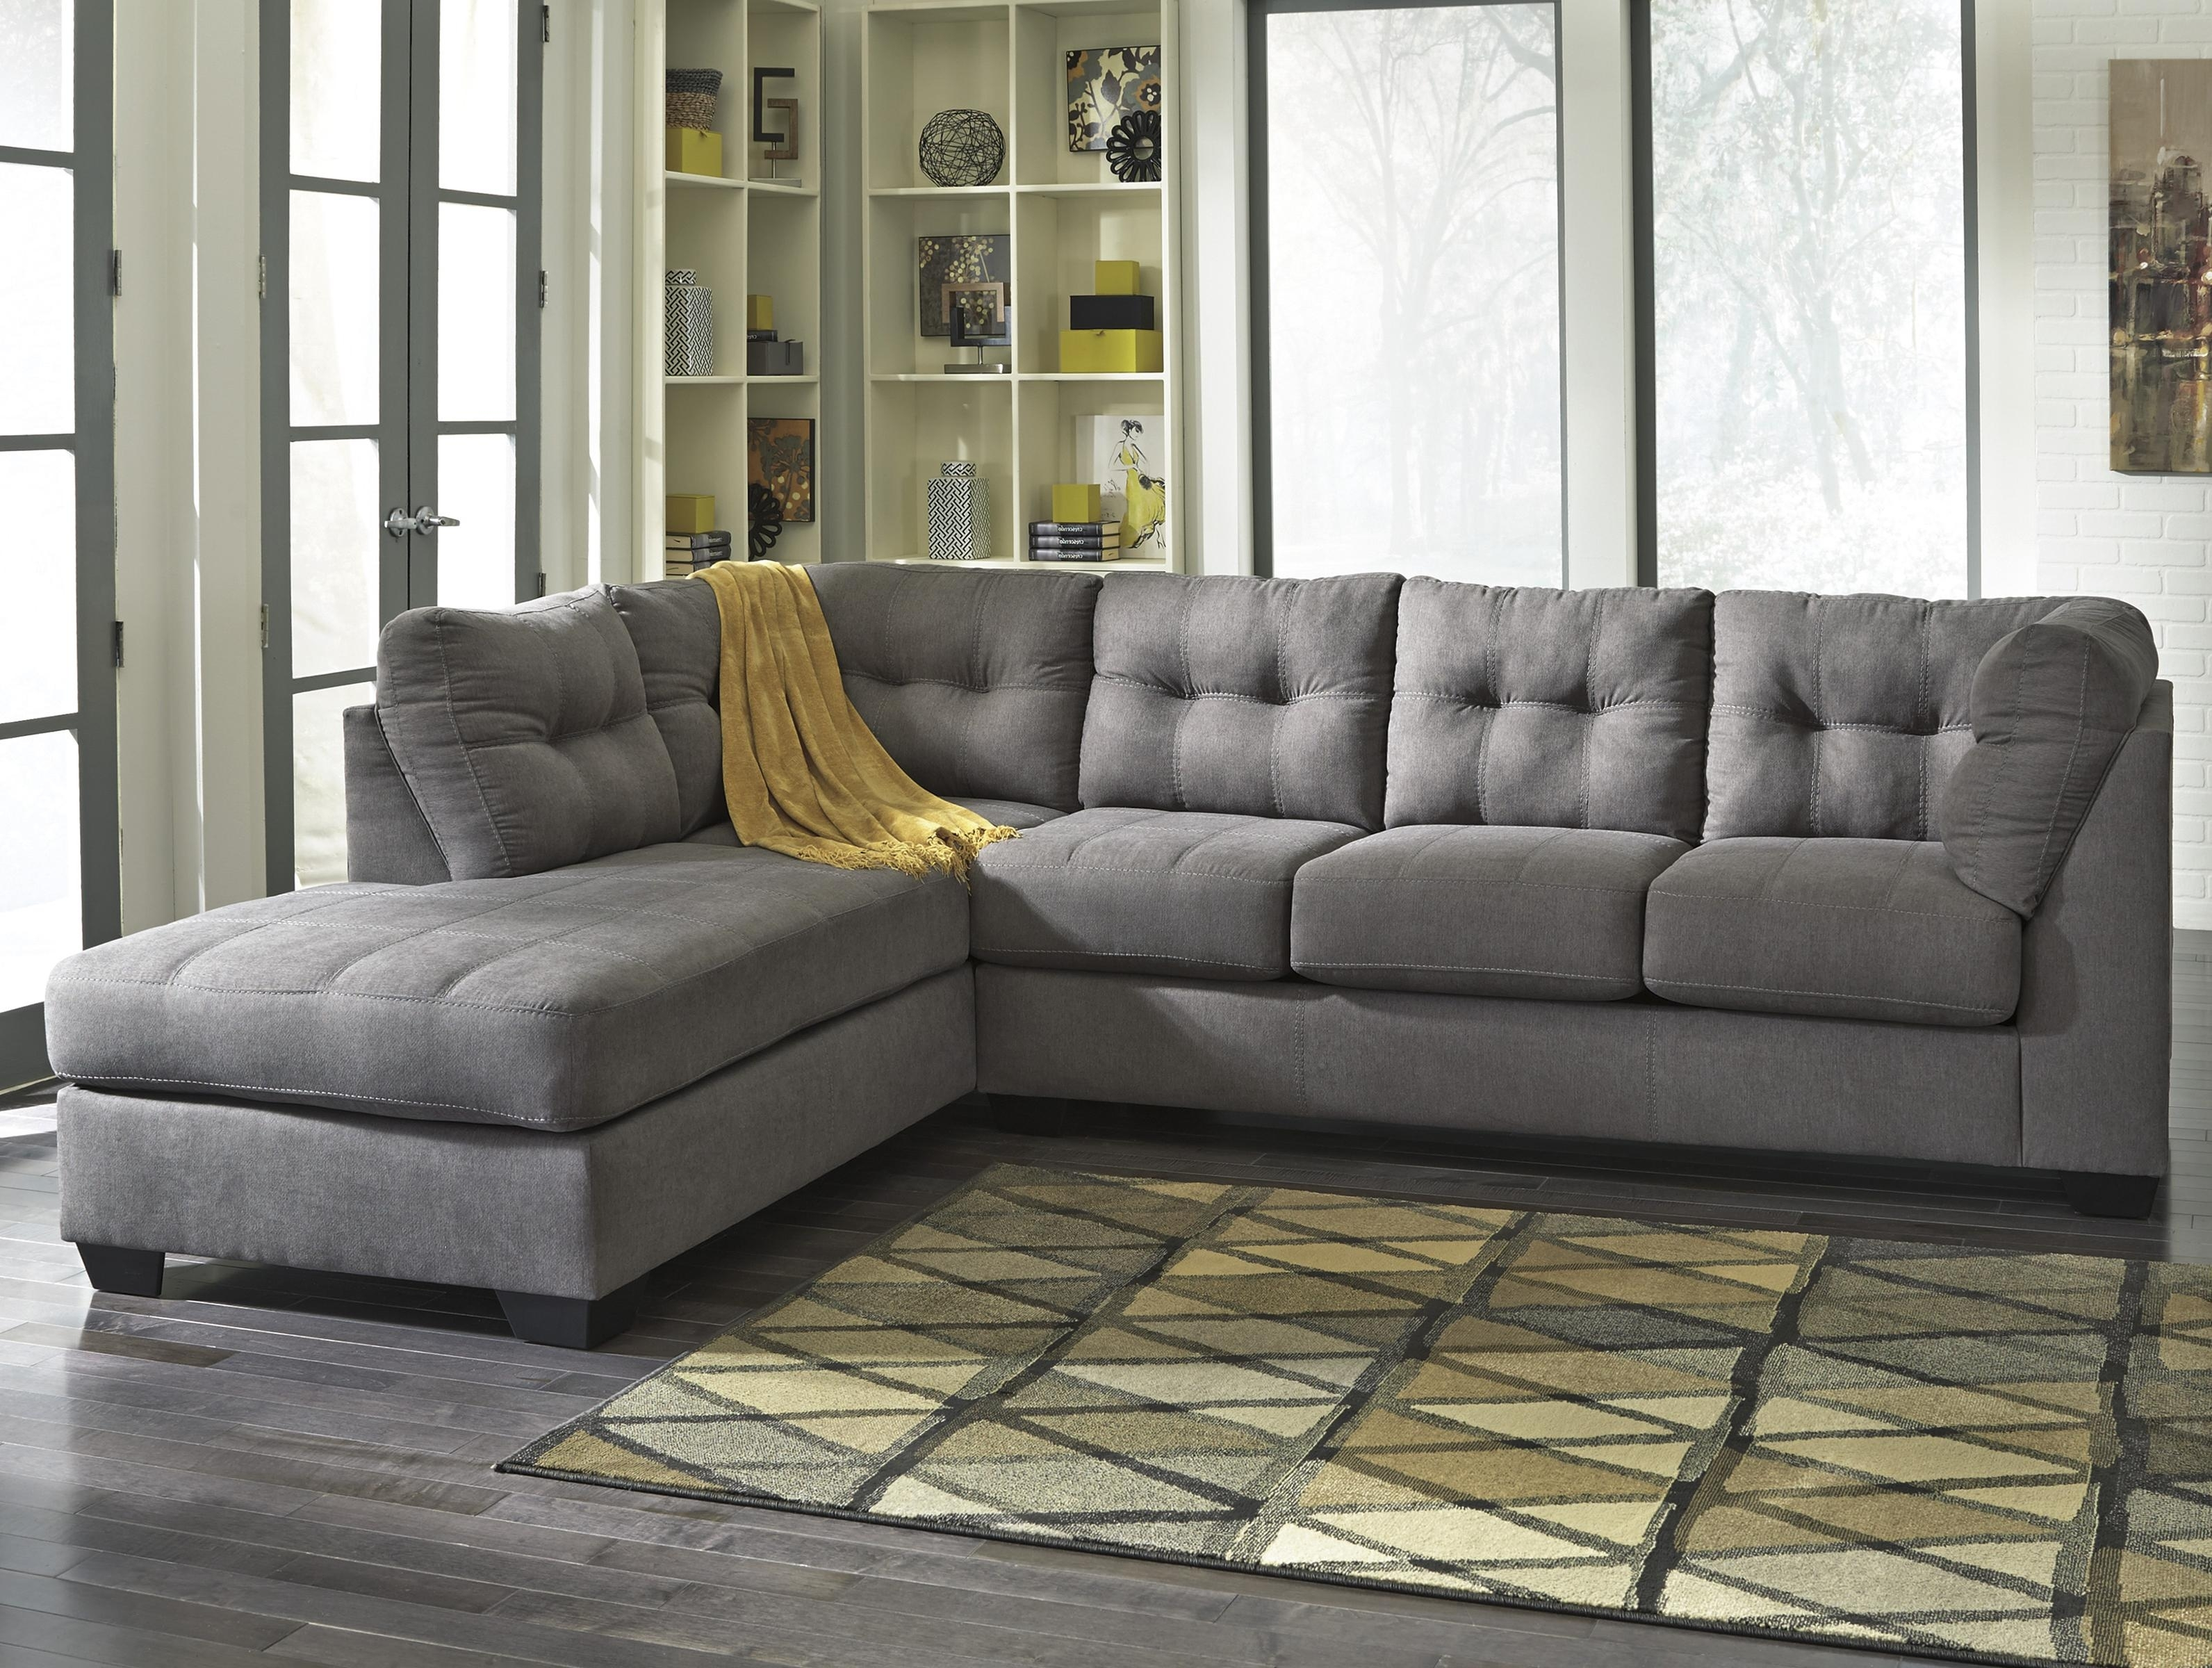 Choosing 2 Piece Sectional Sofa – Elites Home Decor Regarding Kerri 2 Piece Sectionals With Raf Chaise (Image 6 of 25)